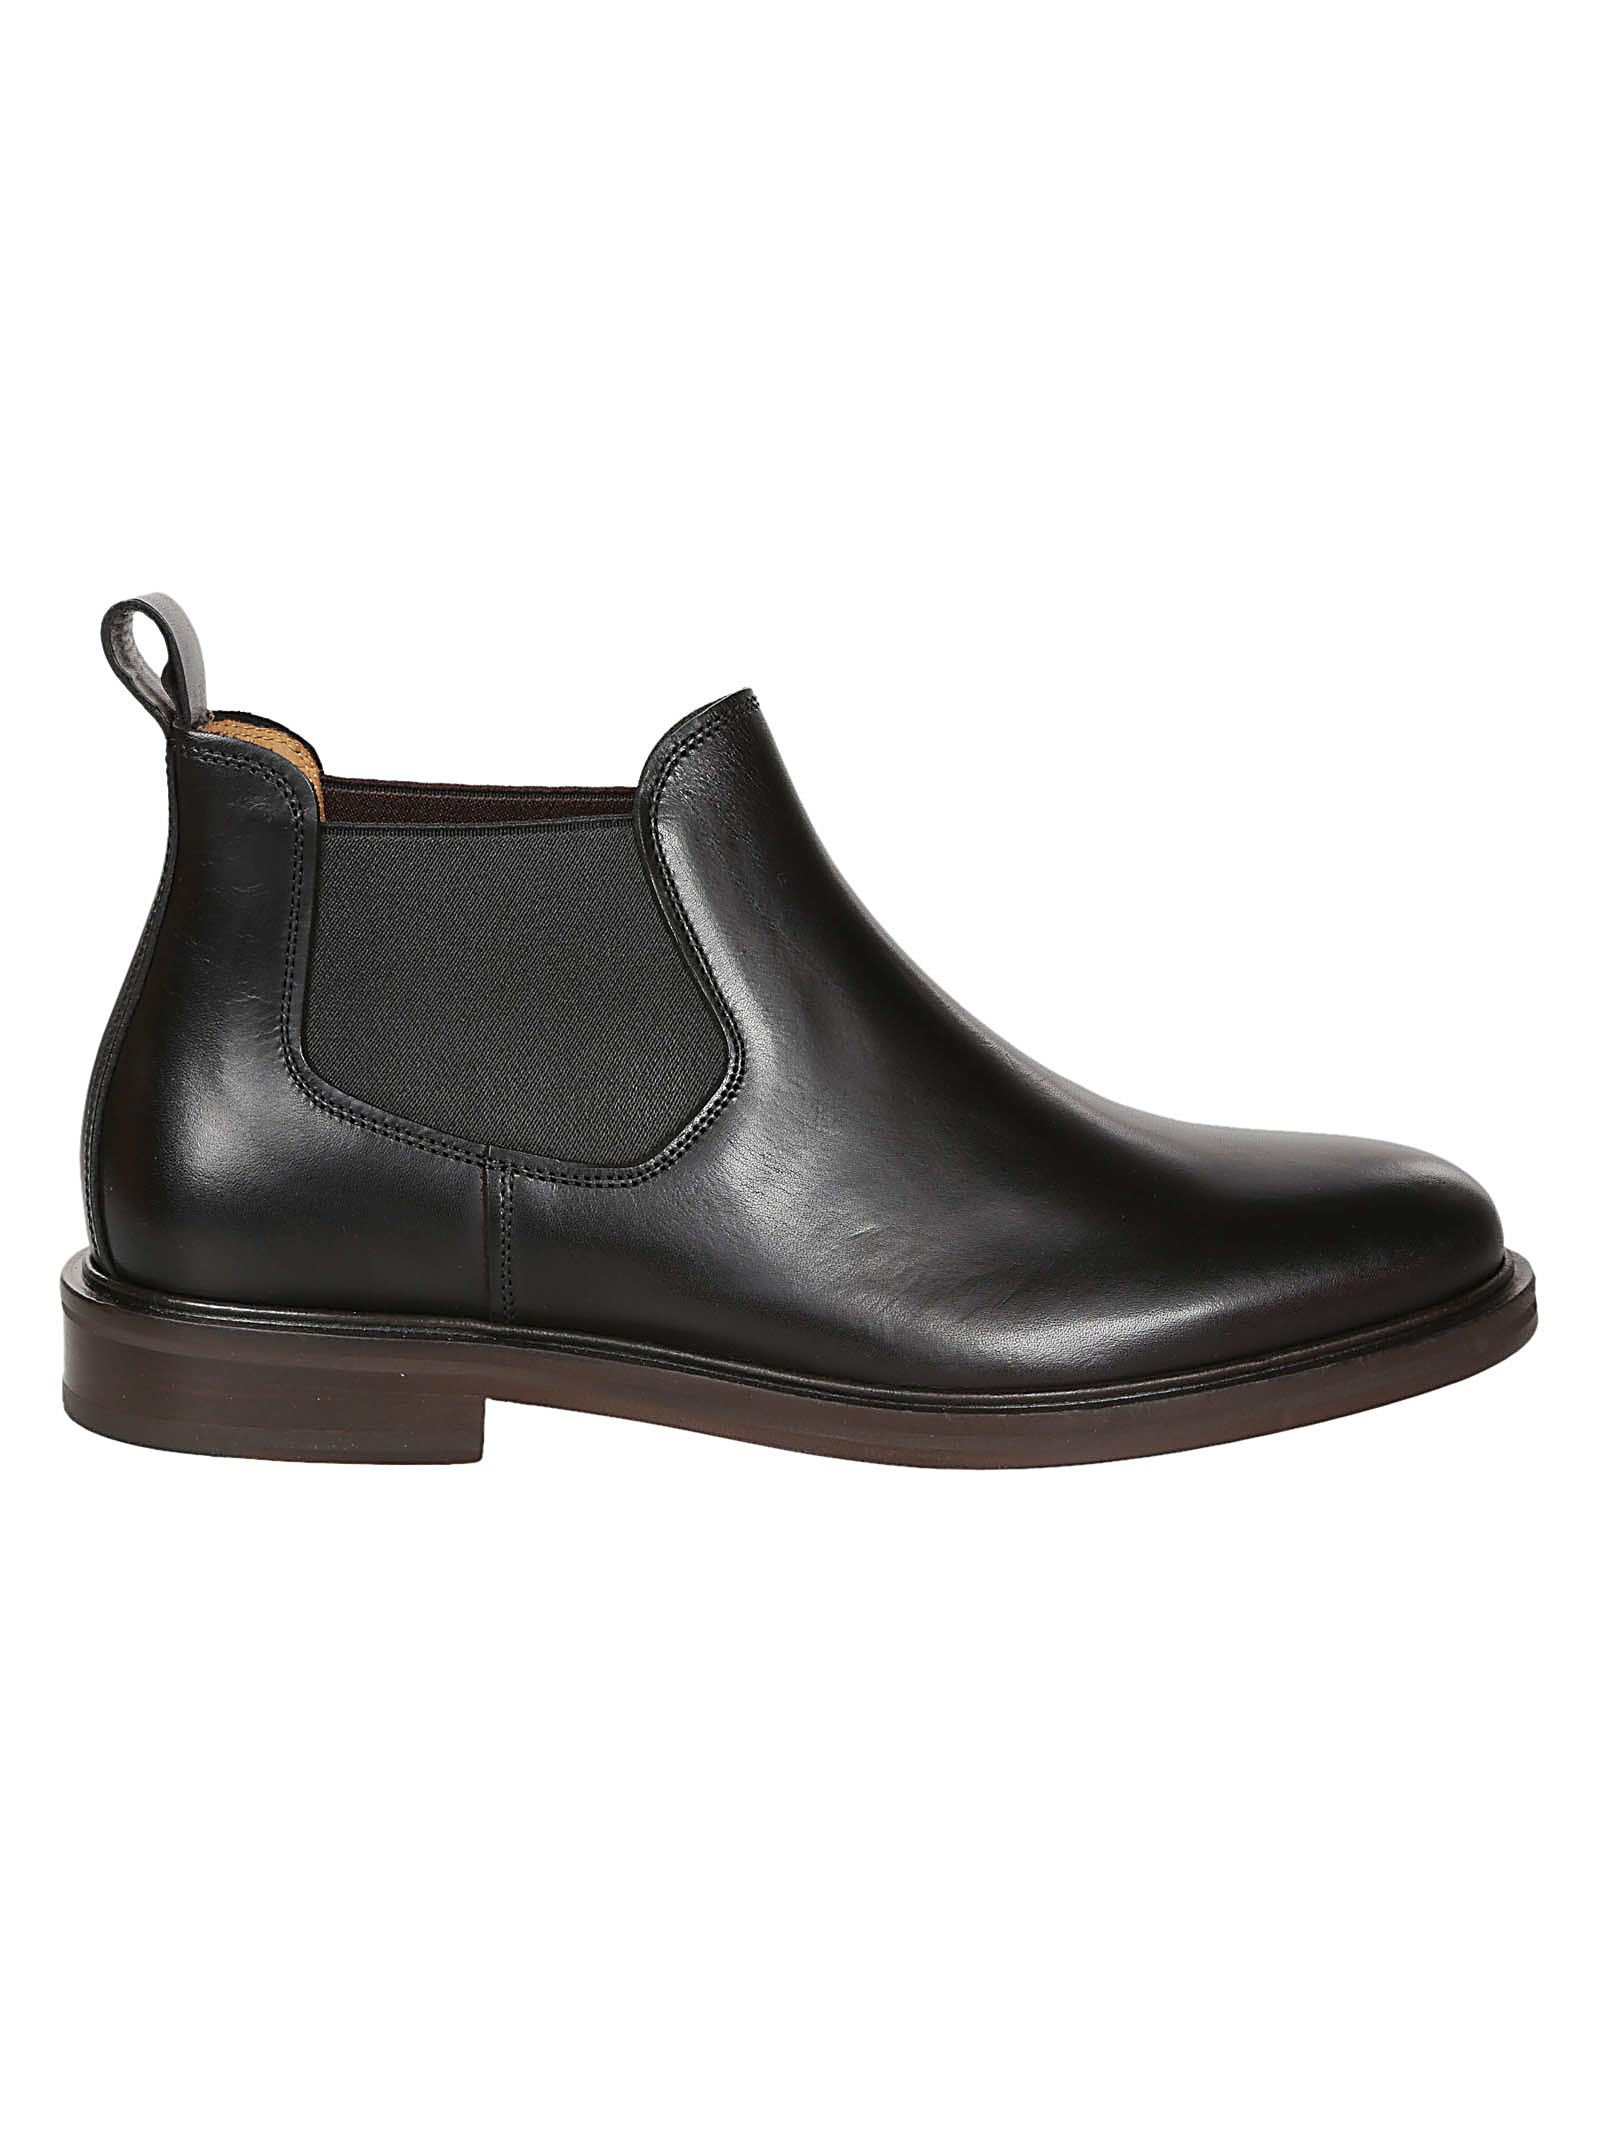 A.P.C. Classic Chelsea Boots in Black